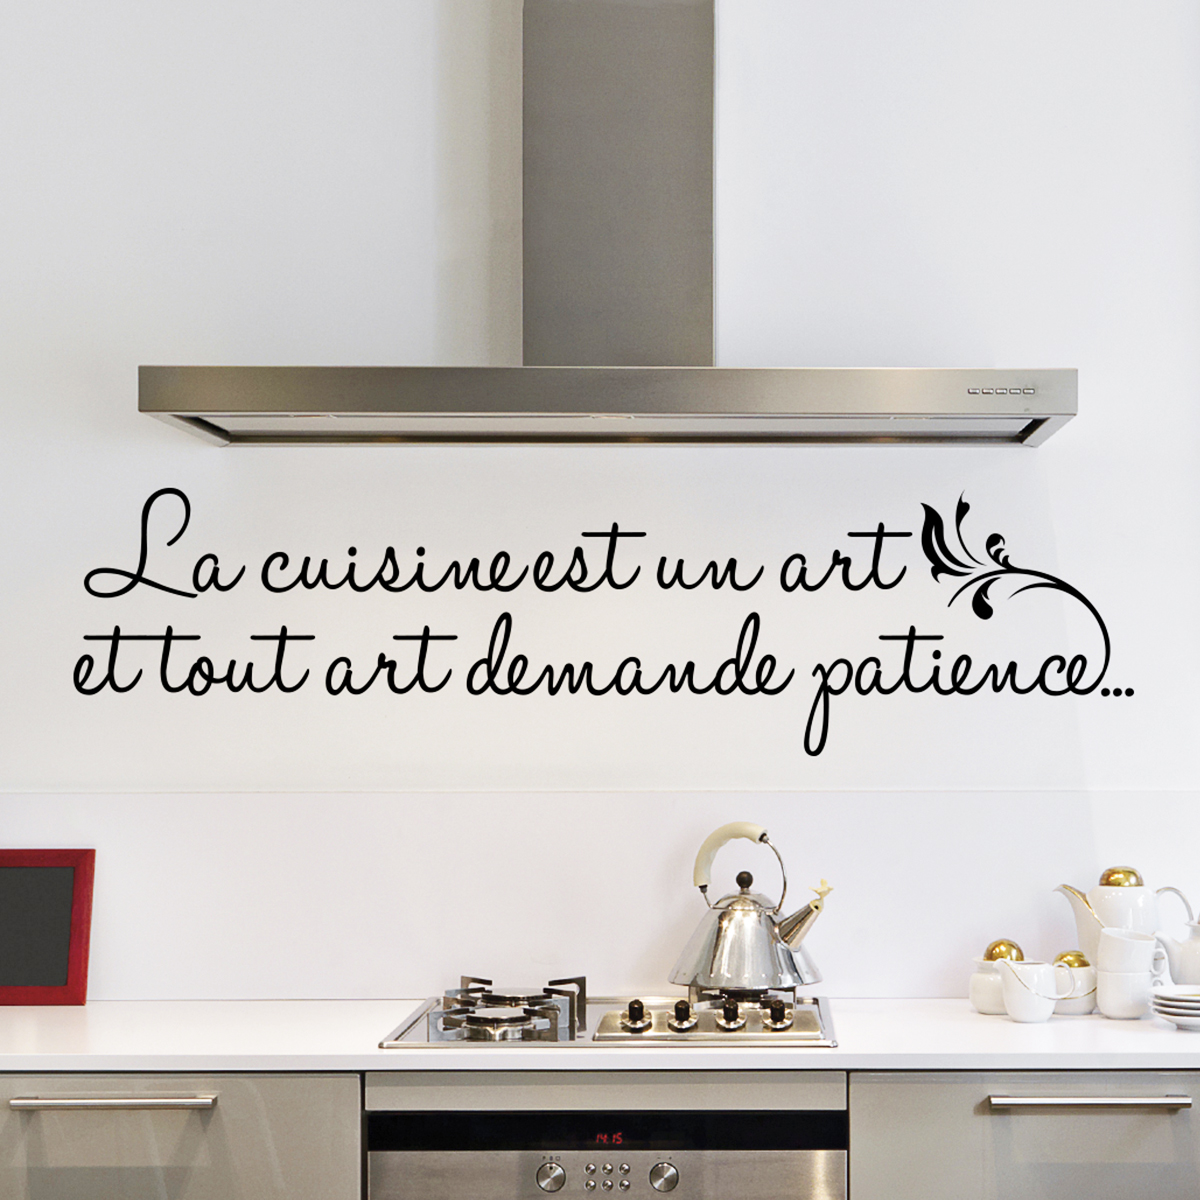 sticker pour cuisine sticker cuisine gourmandise citation stickers muraux pour la cuisine. Black Bedroom Furniture Sets. Home Design Ideas